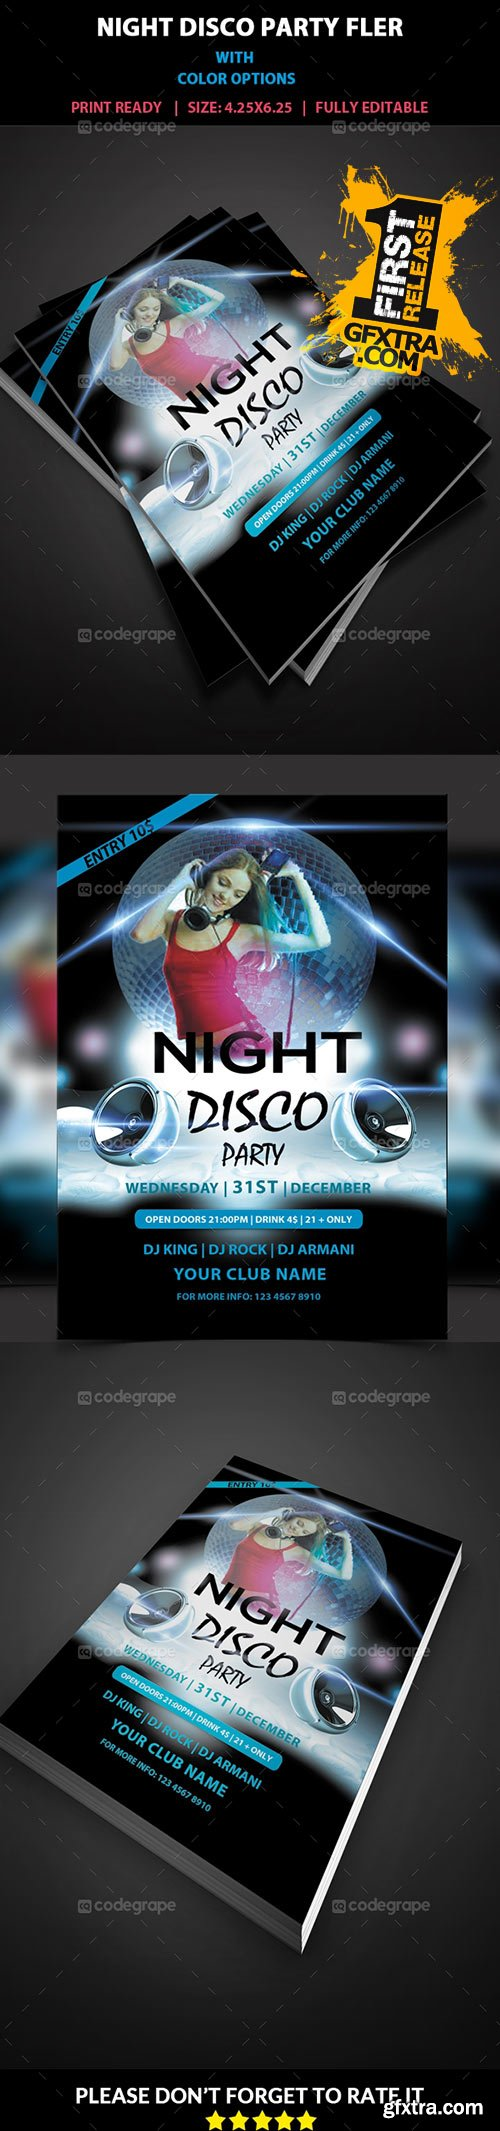 CodeGrape - Night Party Flyer 5314